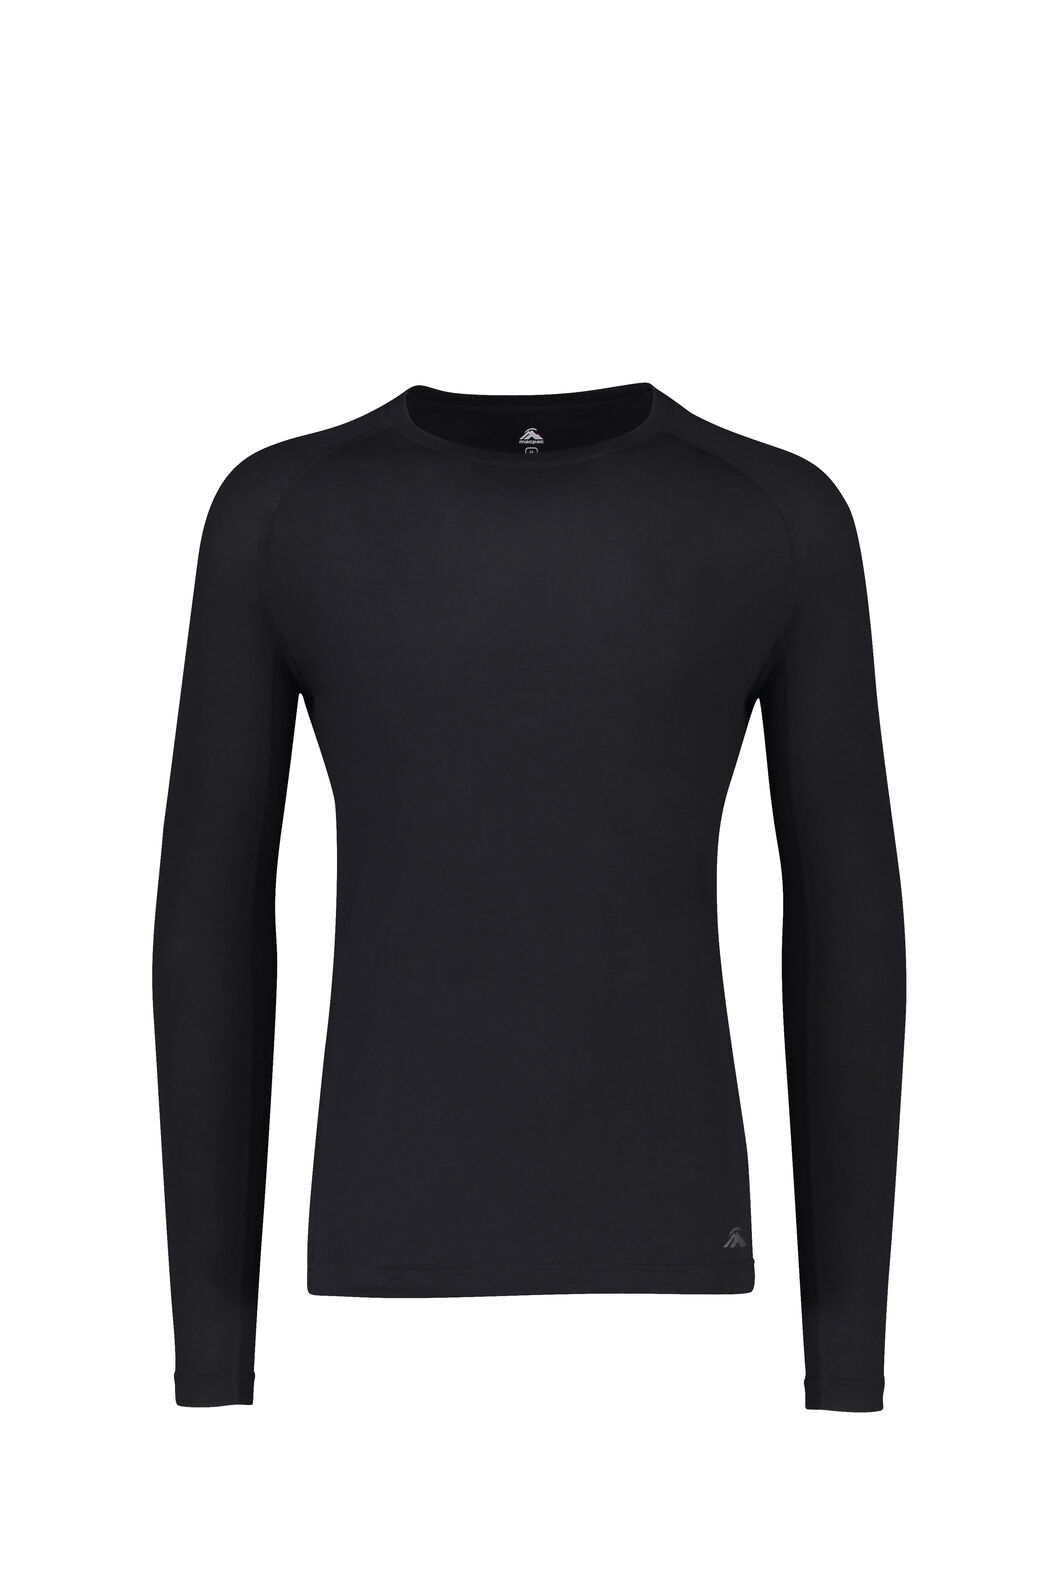 Macpac 150 Merino Long Sleeve Top — Men's, Black, hi-res